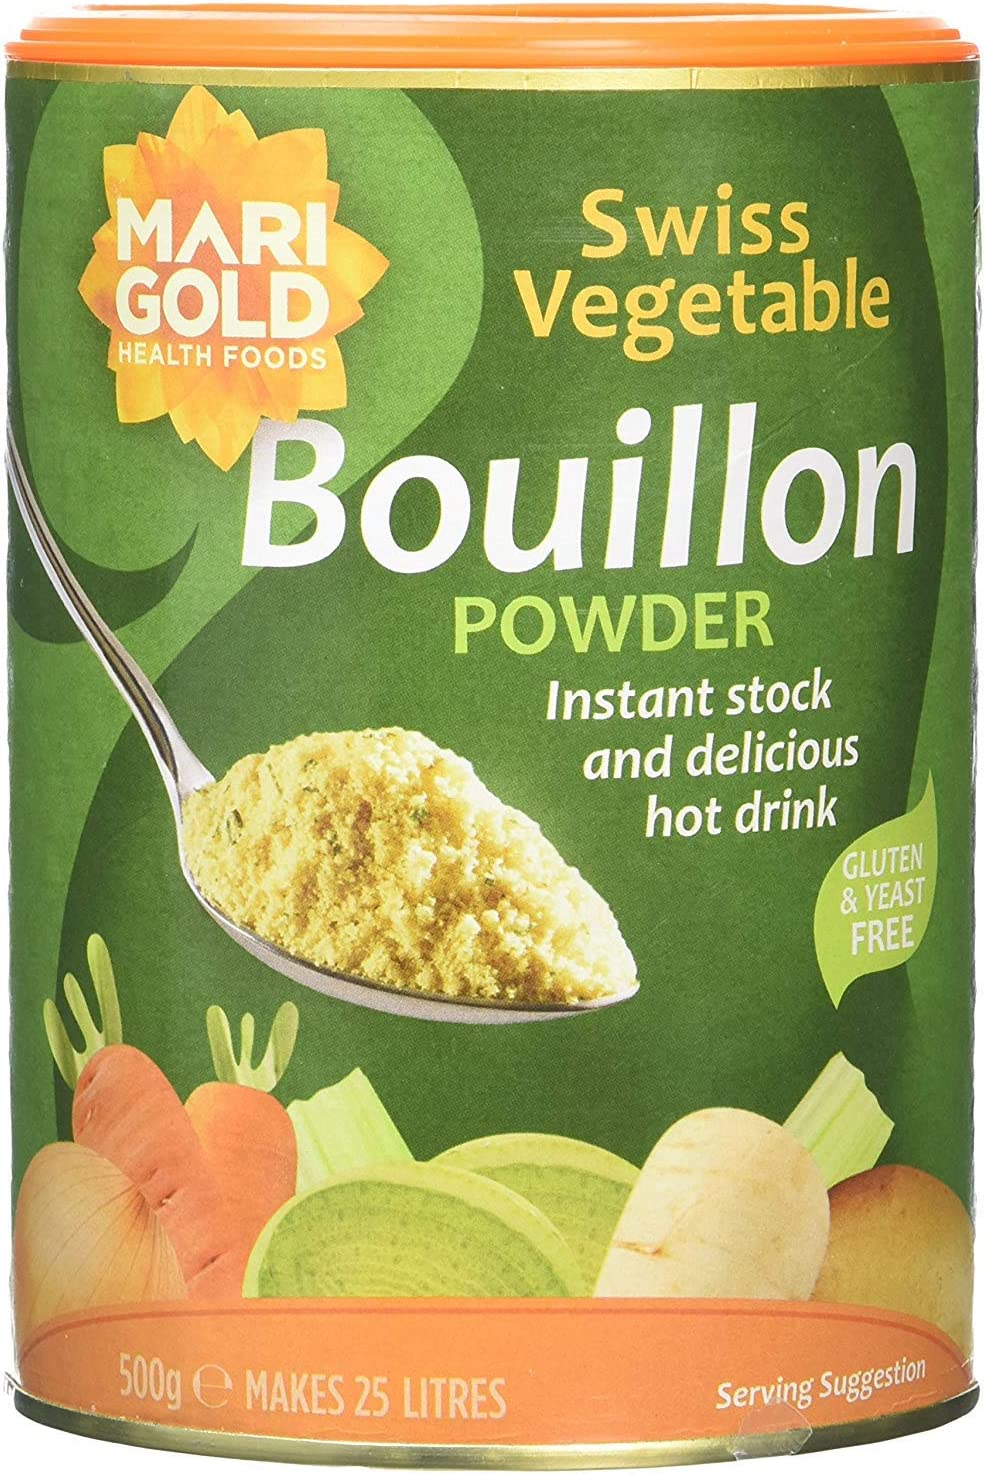 Marigold Swiss Vegetable Powder Spasm Online limited product price 500g Bouillon